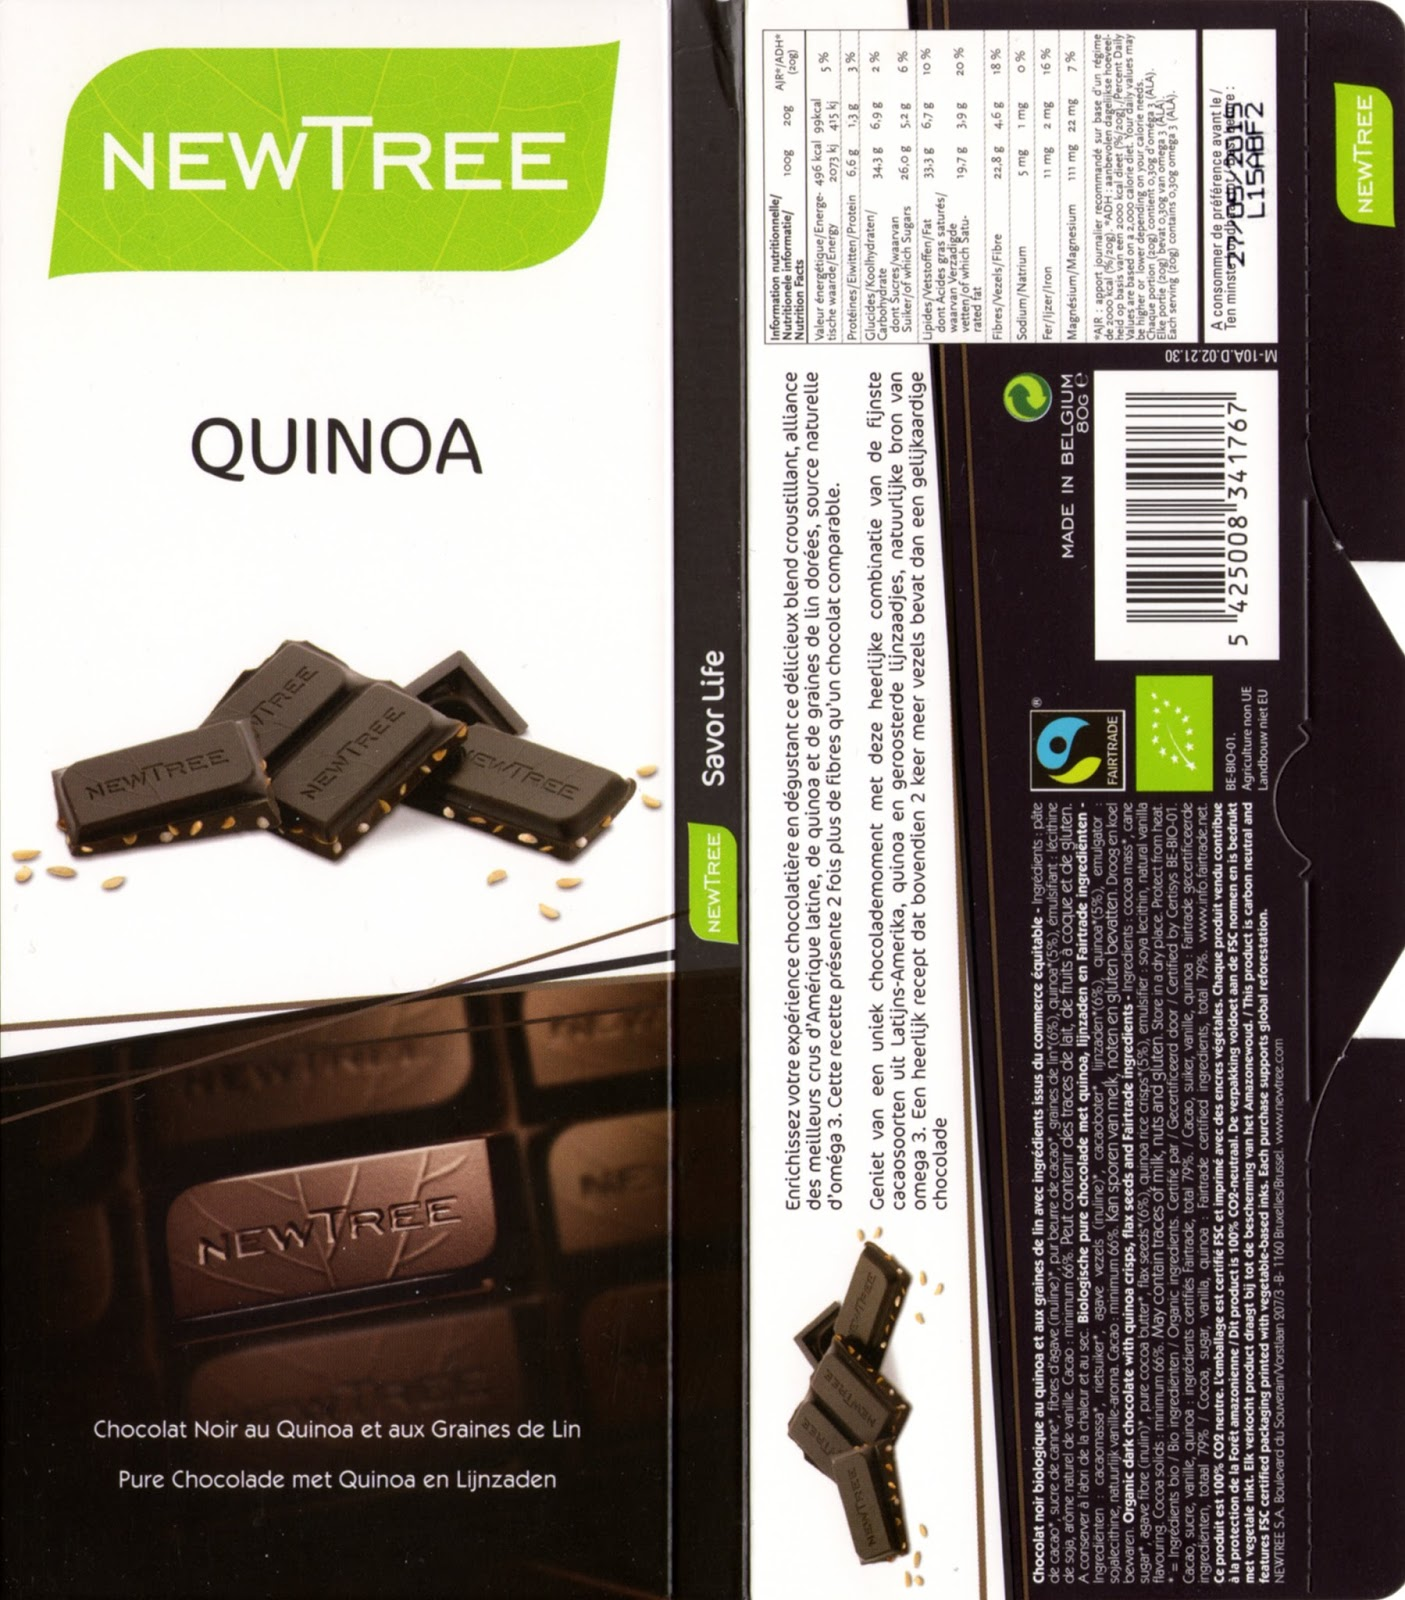 tablette de chocolat noir gourmand newtree quinoa noir 66